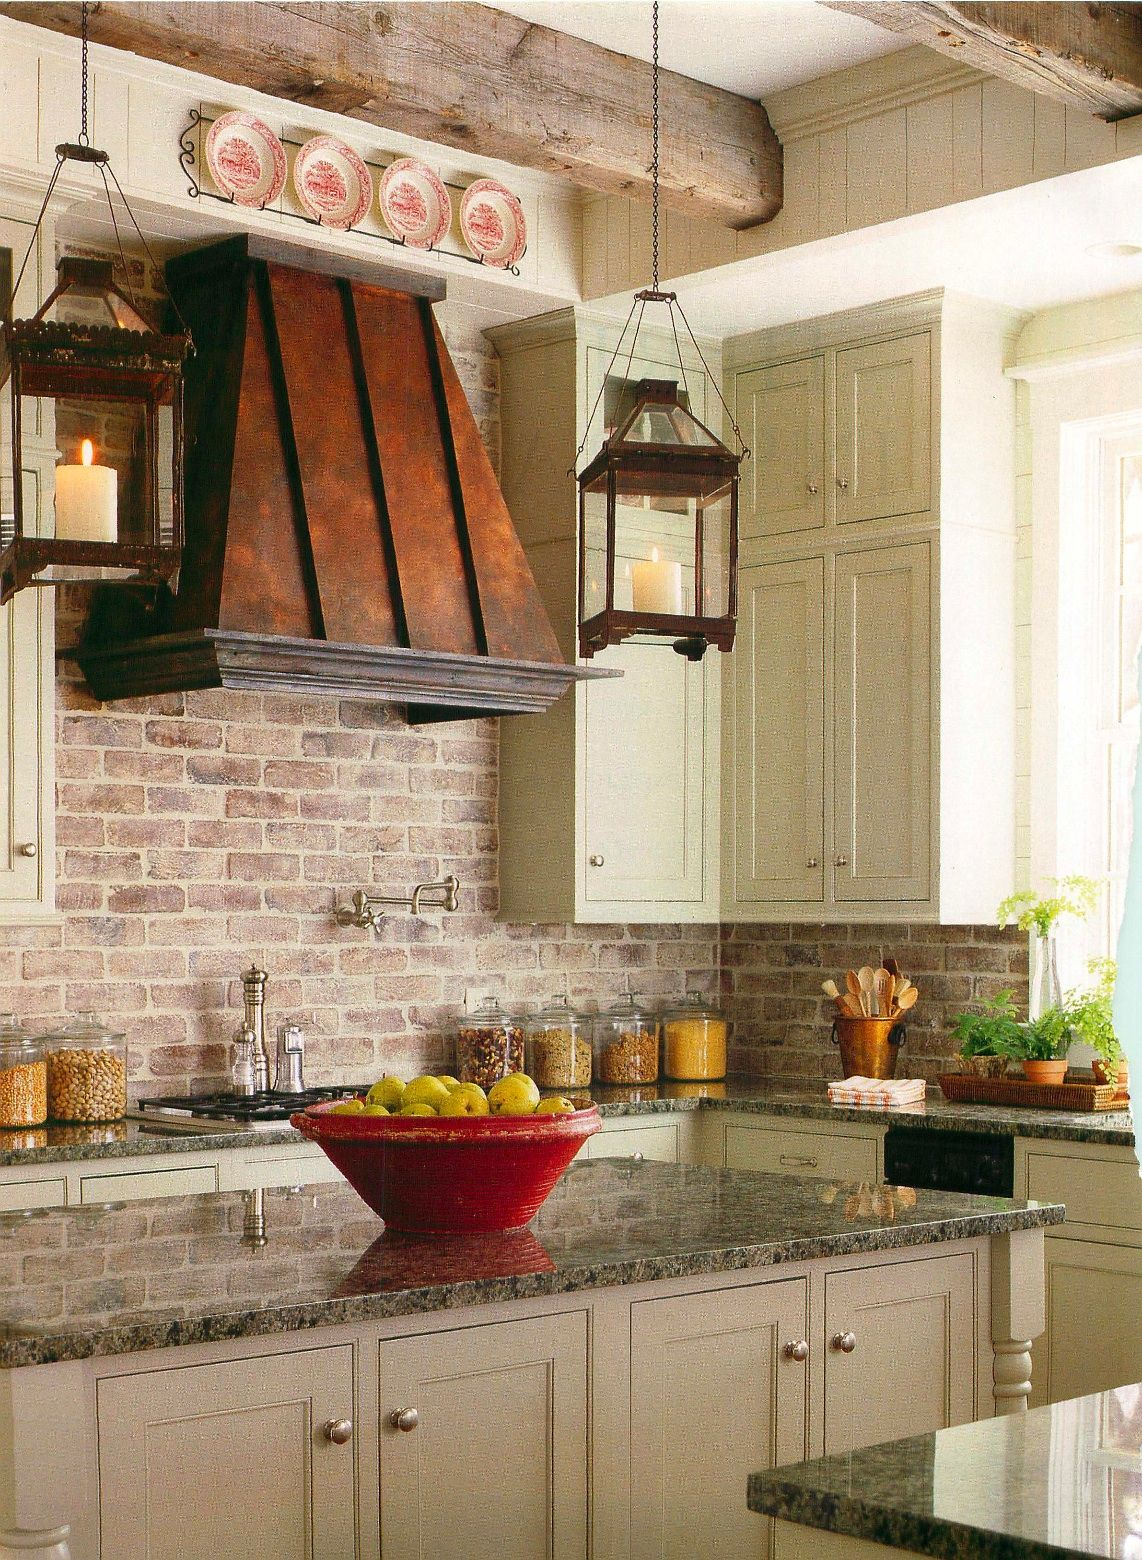 Delicieux @Linda Patton The Exposed Brick In This Kitchen With The Copper And  Textured Countertops, Wood Beams, And Pops Of Cream Help To Make This  Kitchen Country ...